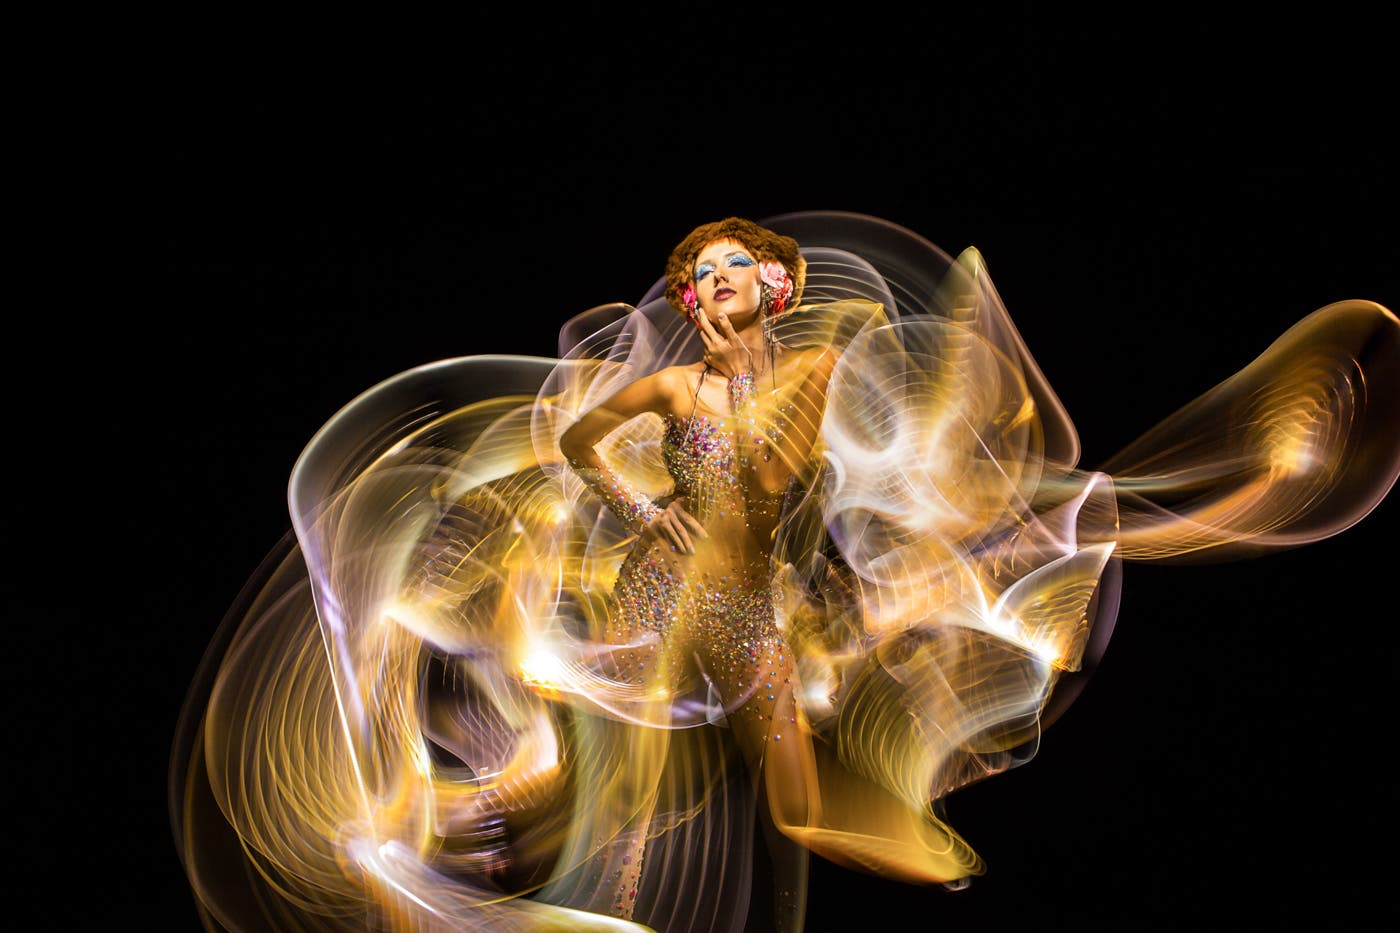 Patrick Rochon Uses 24 Canon 5D Mk II Cameras For These Light Paintings